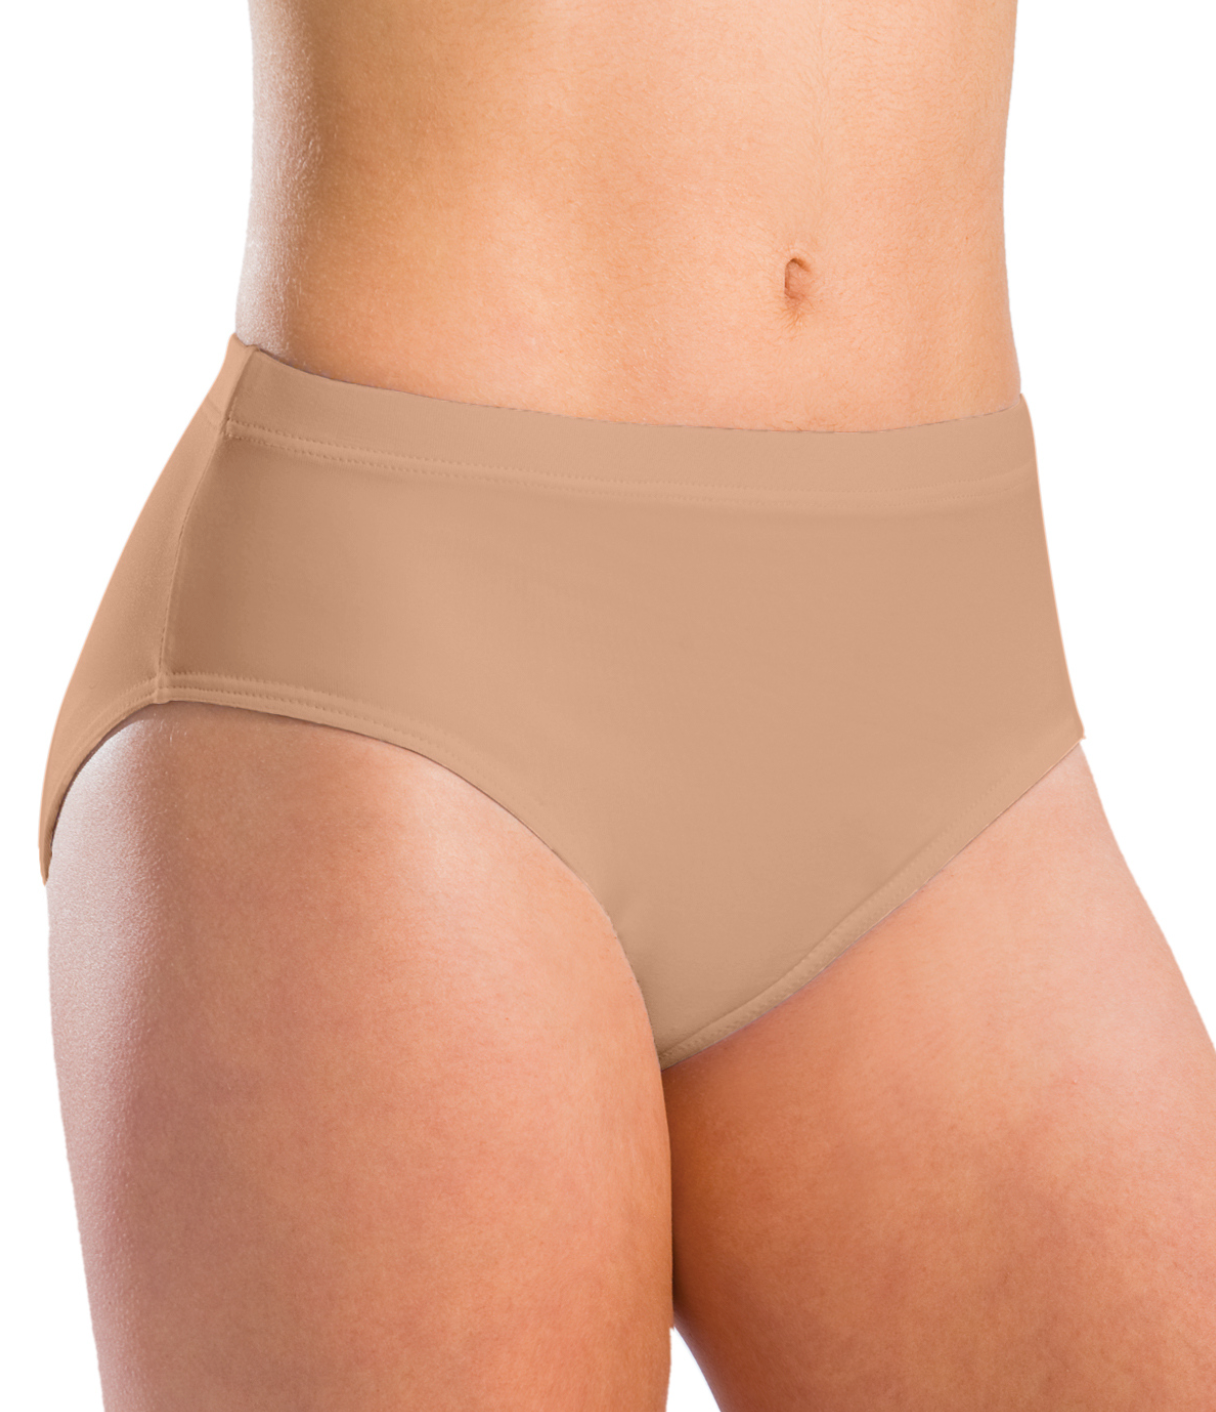 Motionwear Adult Silkskyn Team Brief - 2494